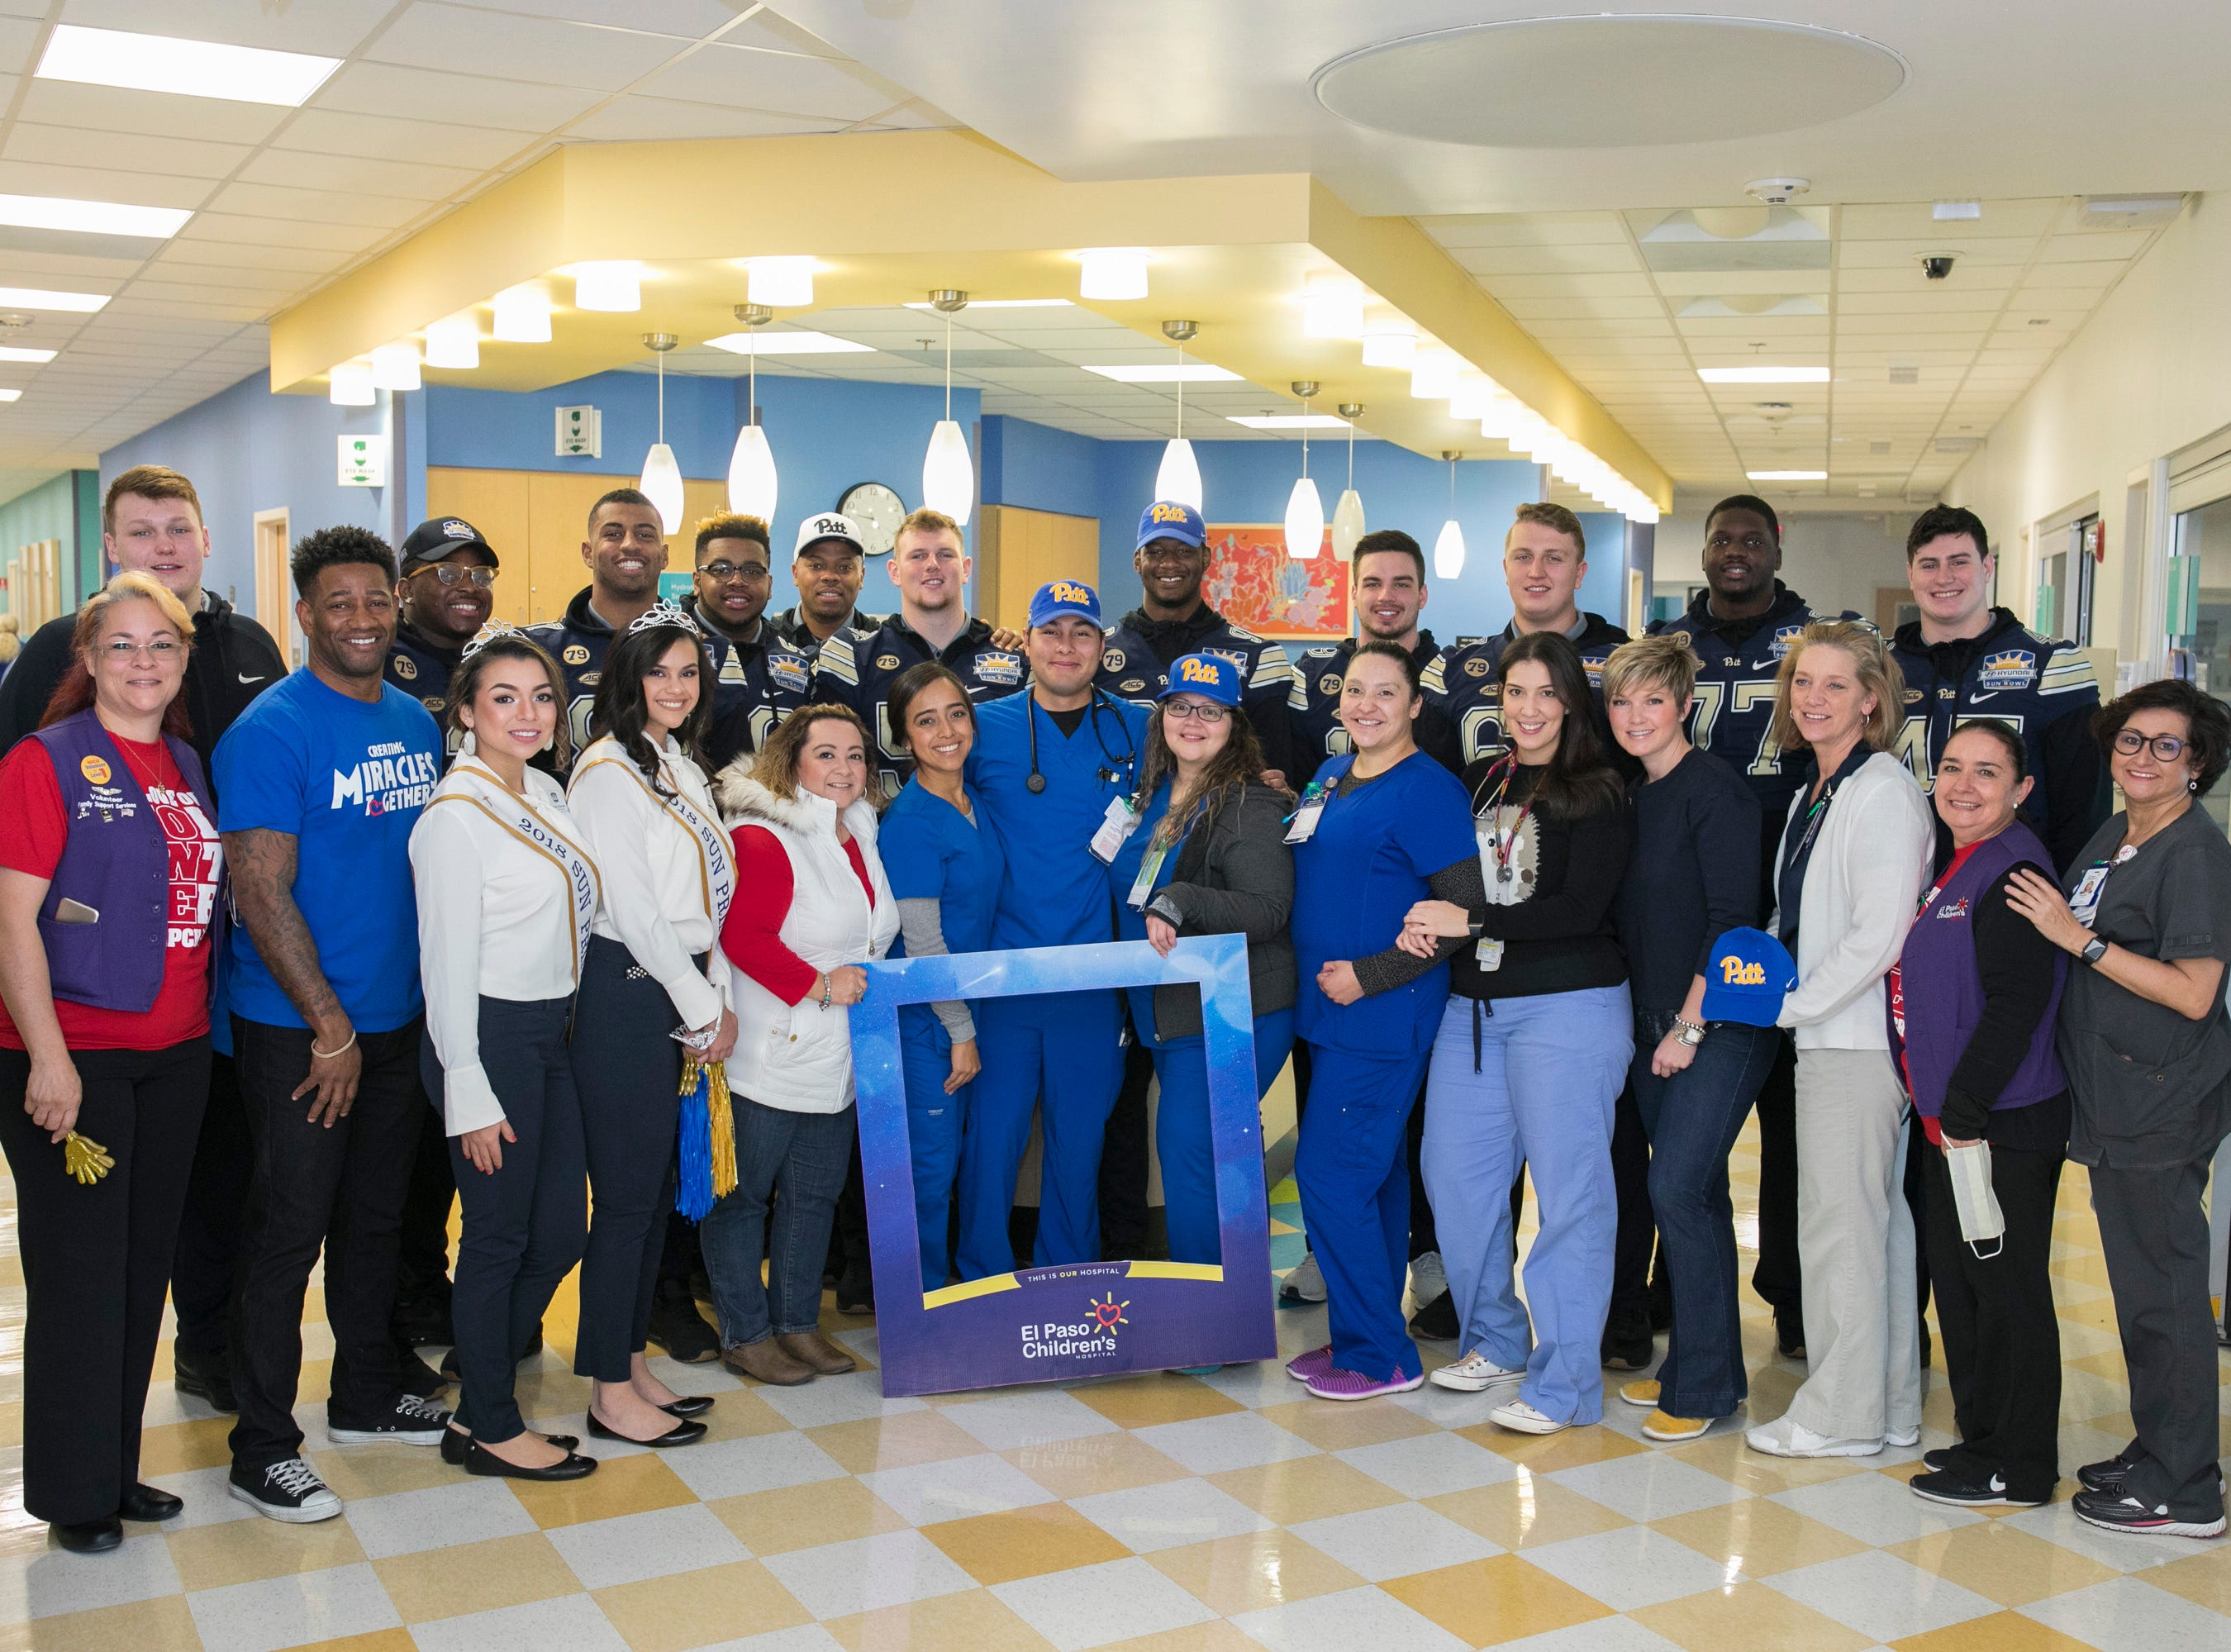 The Pittsburgh Panthers football team visits the El Paso Children's Hospital, Sunday, December 30, 2018, in El Paso, TX. Photo by Ivan Pierre Aguirre/Sun Bowl Association